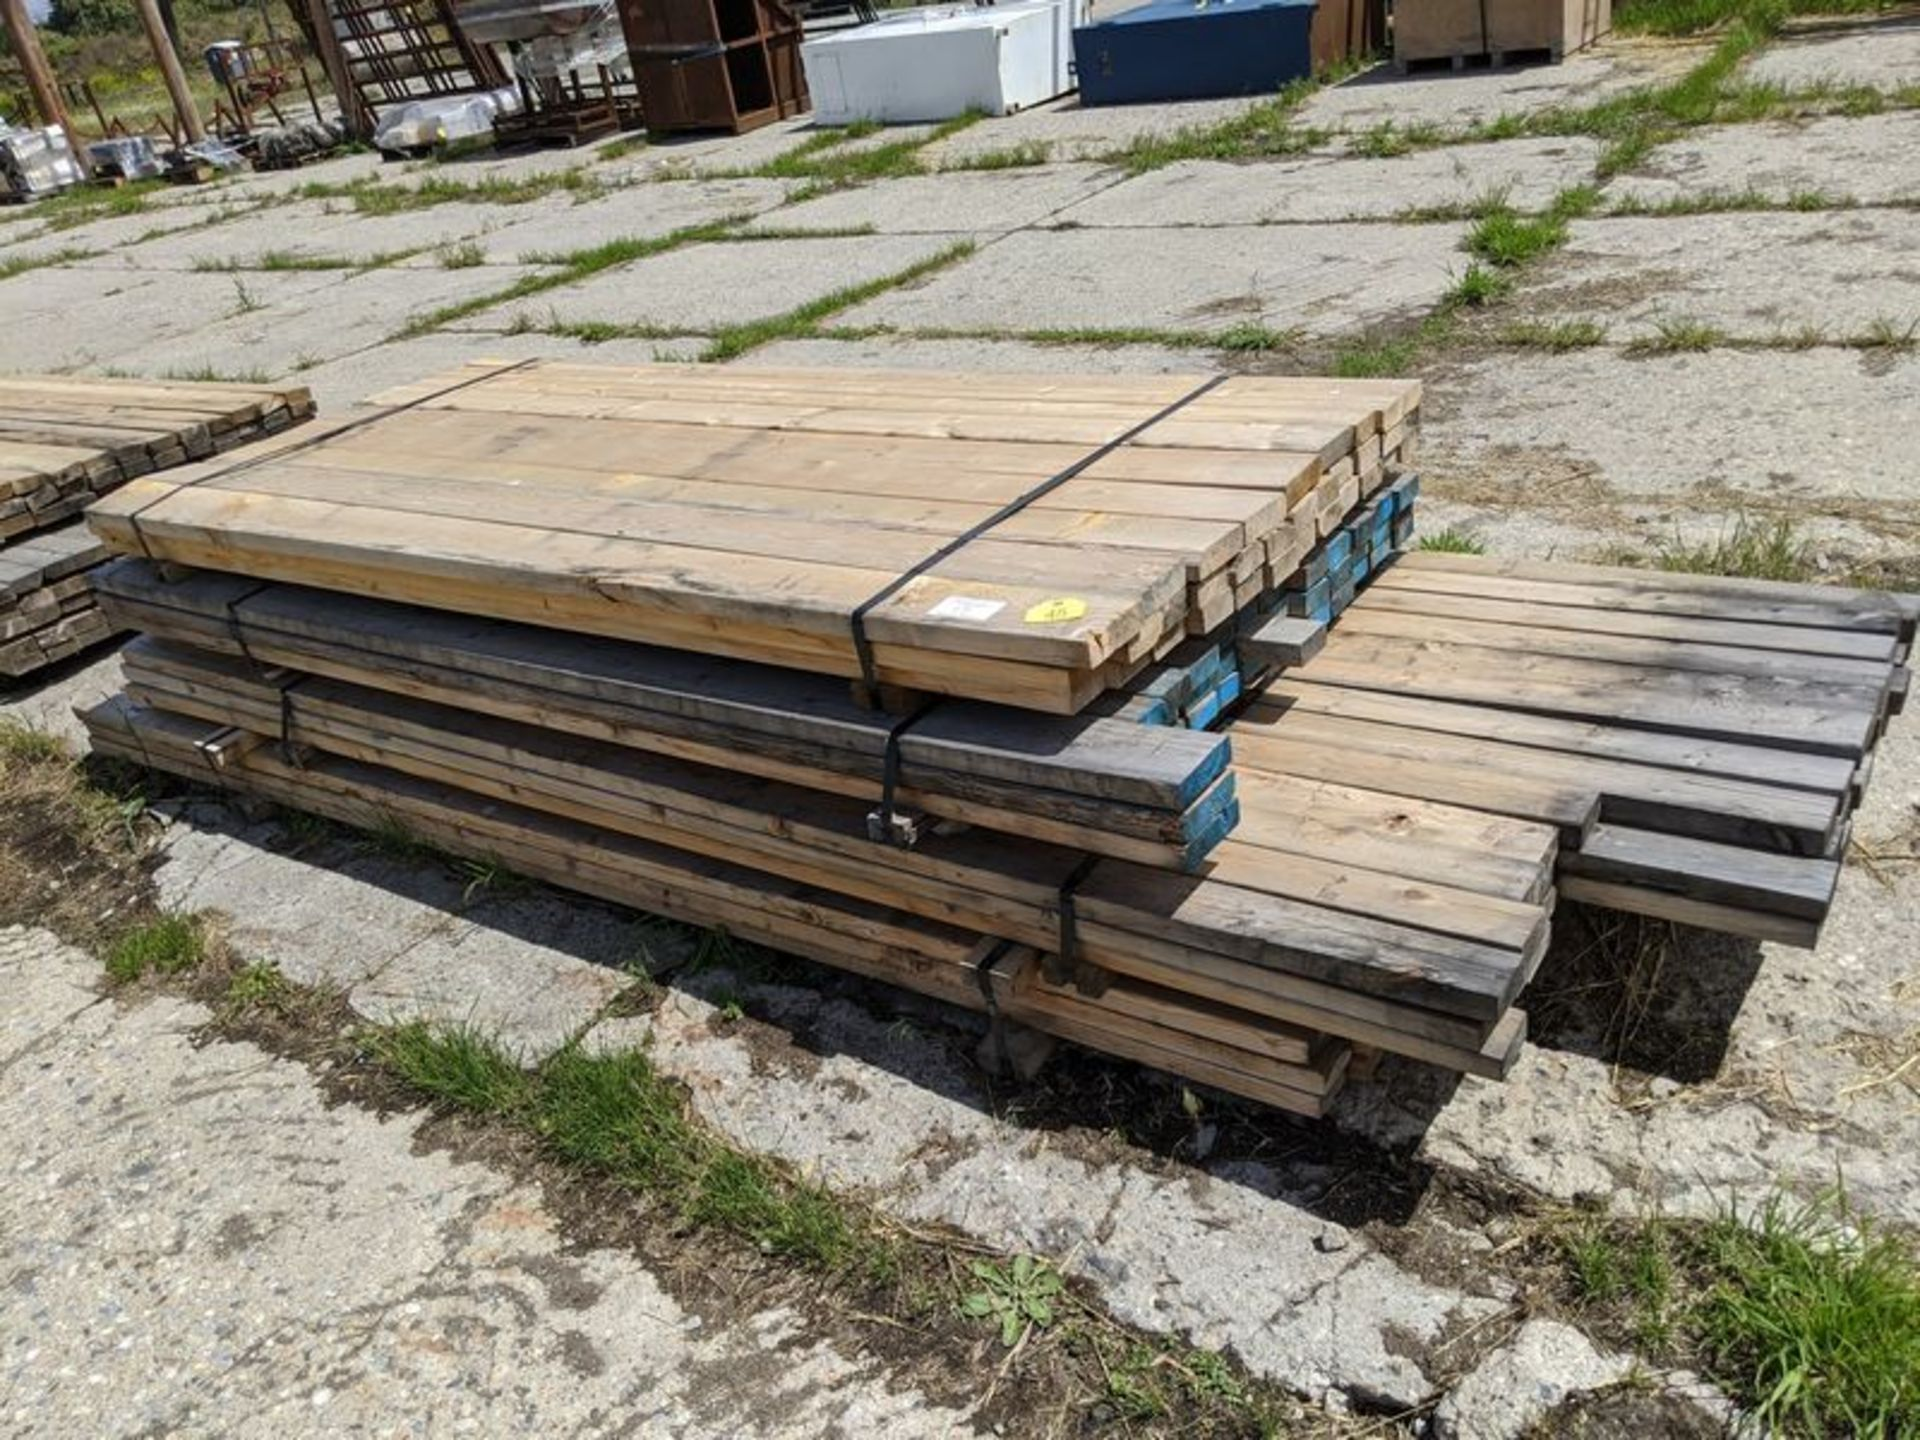 Lot 17 - 4 Slings, Assorted, 2 x 4 and 2 x 6